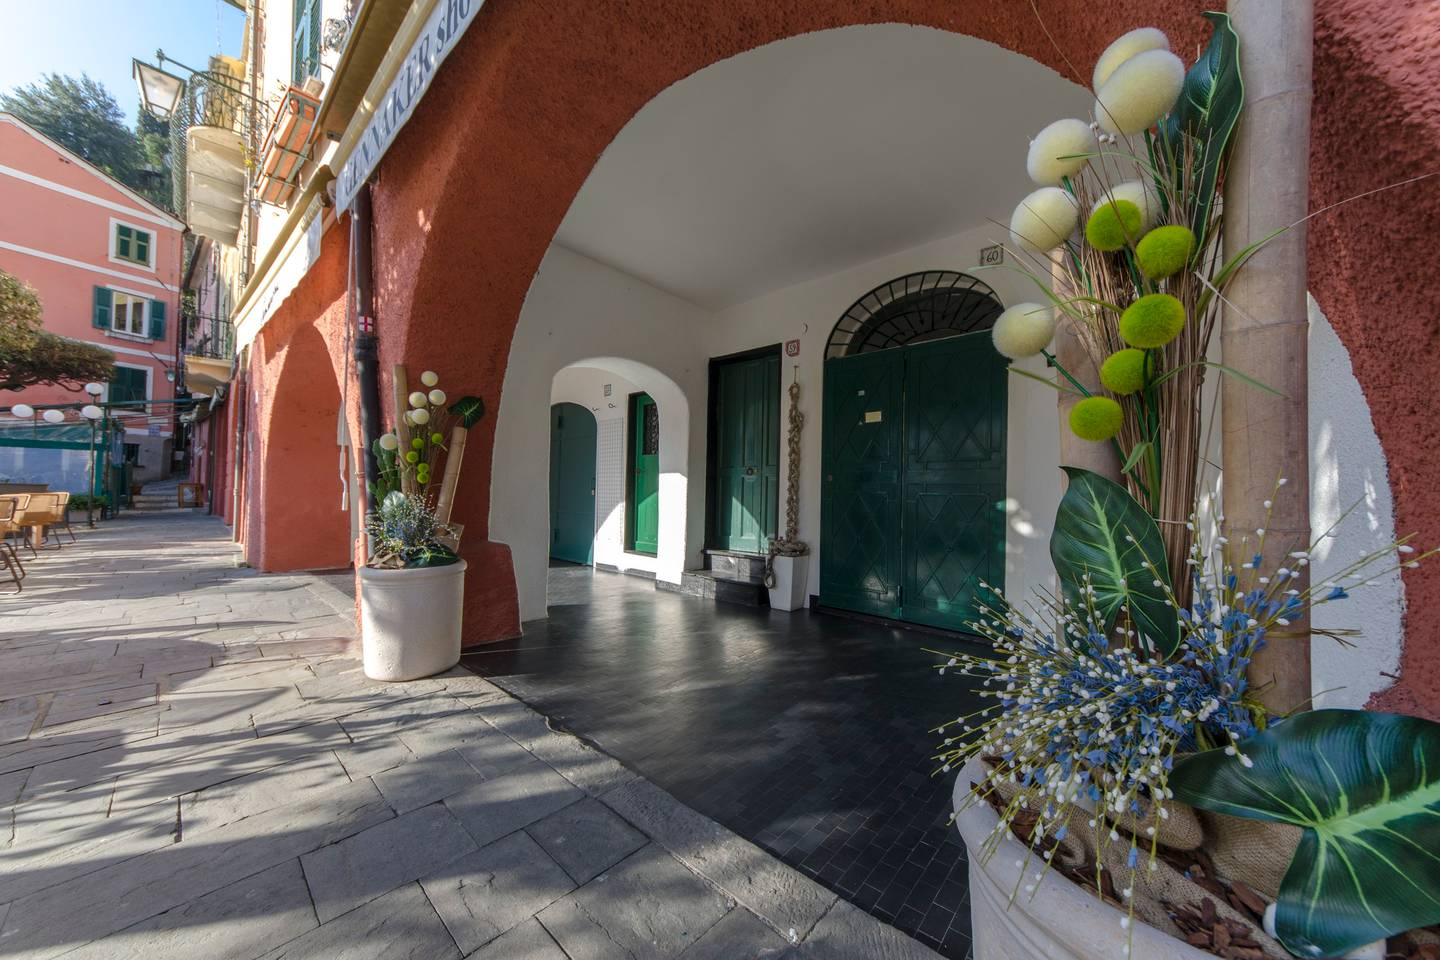 Apartment Hintown  La Finestra sulla Piazzetta a Portofino photo 18424604